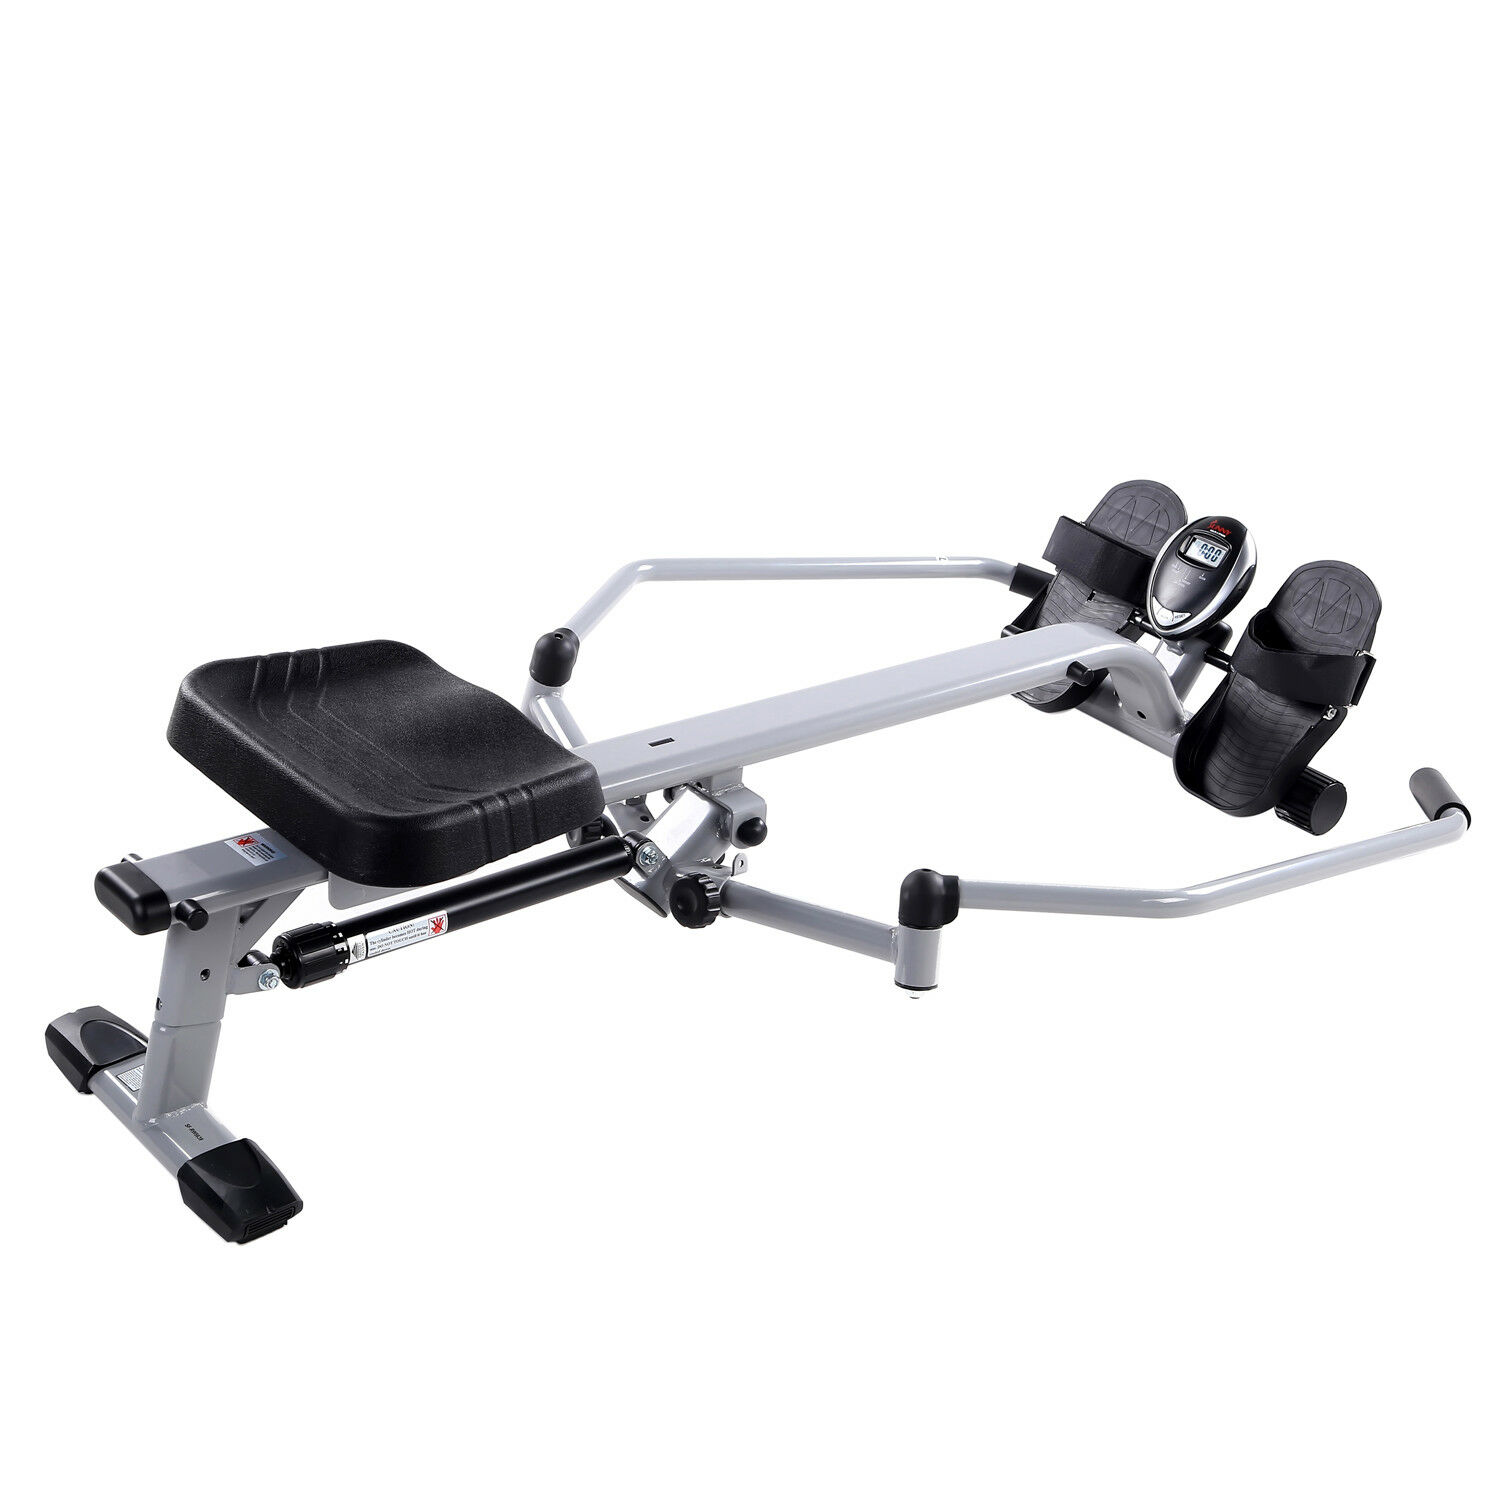 Sunny Health and Fitness Full Motion Rowing Machine Rower with 350lb Capacity an 7